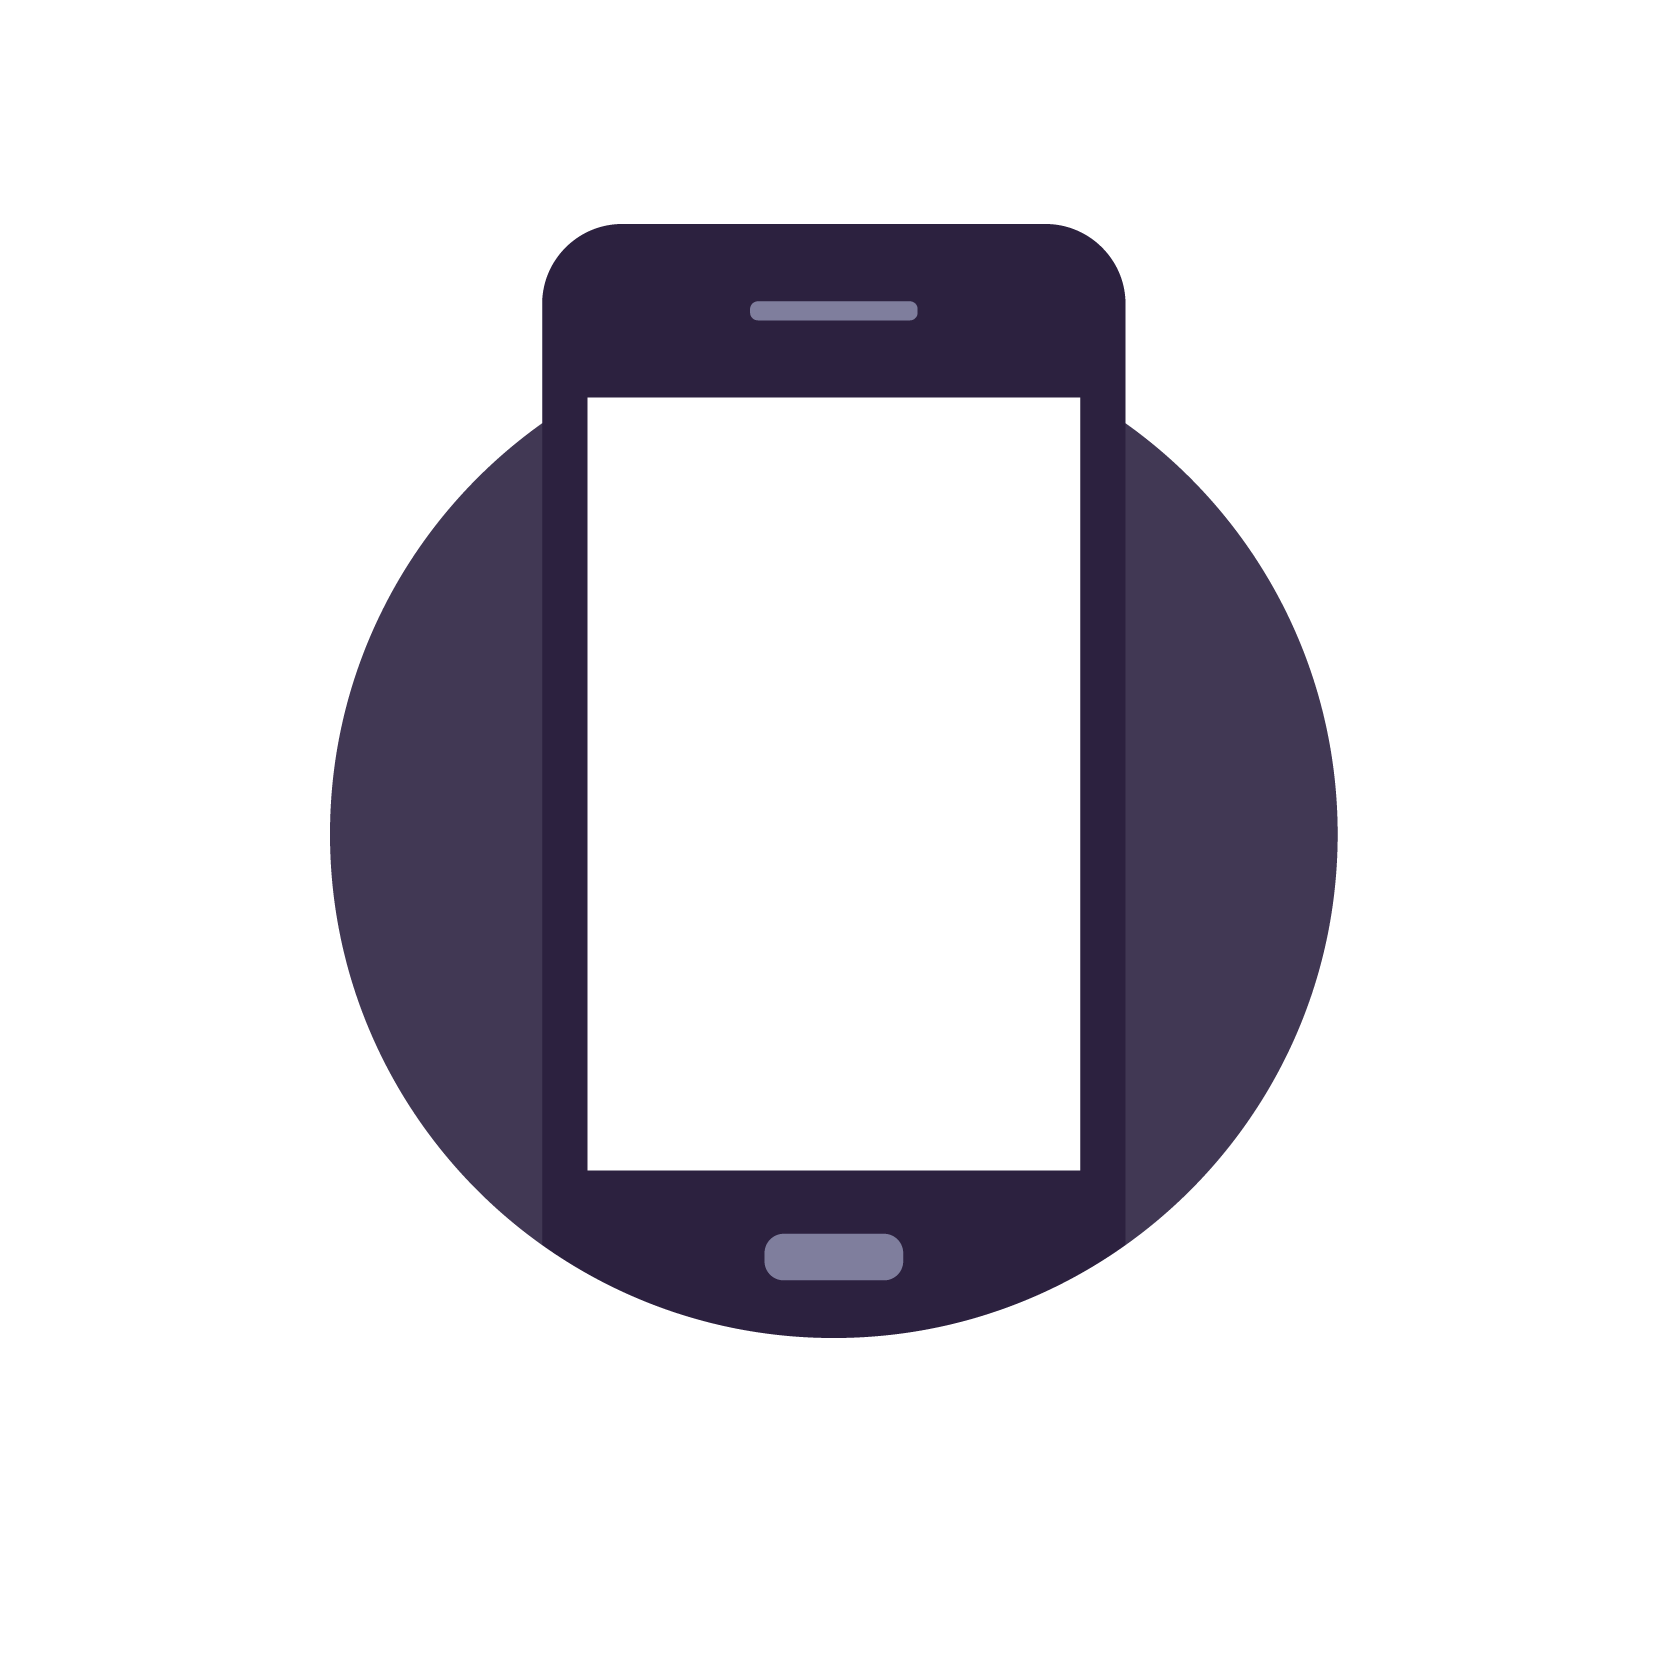 01_SB_Packaging_Icons_R1_Phone